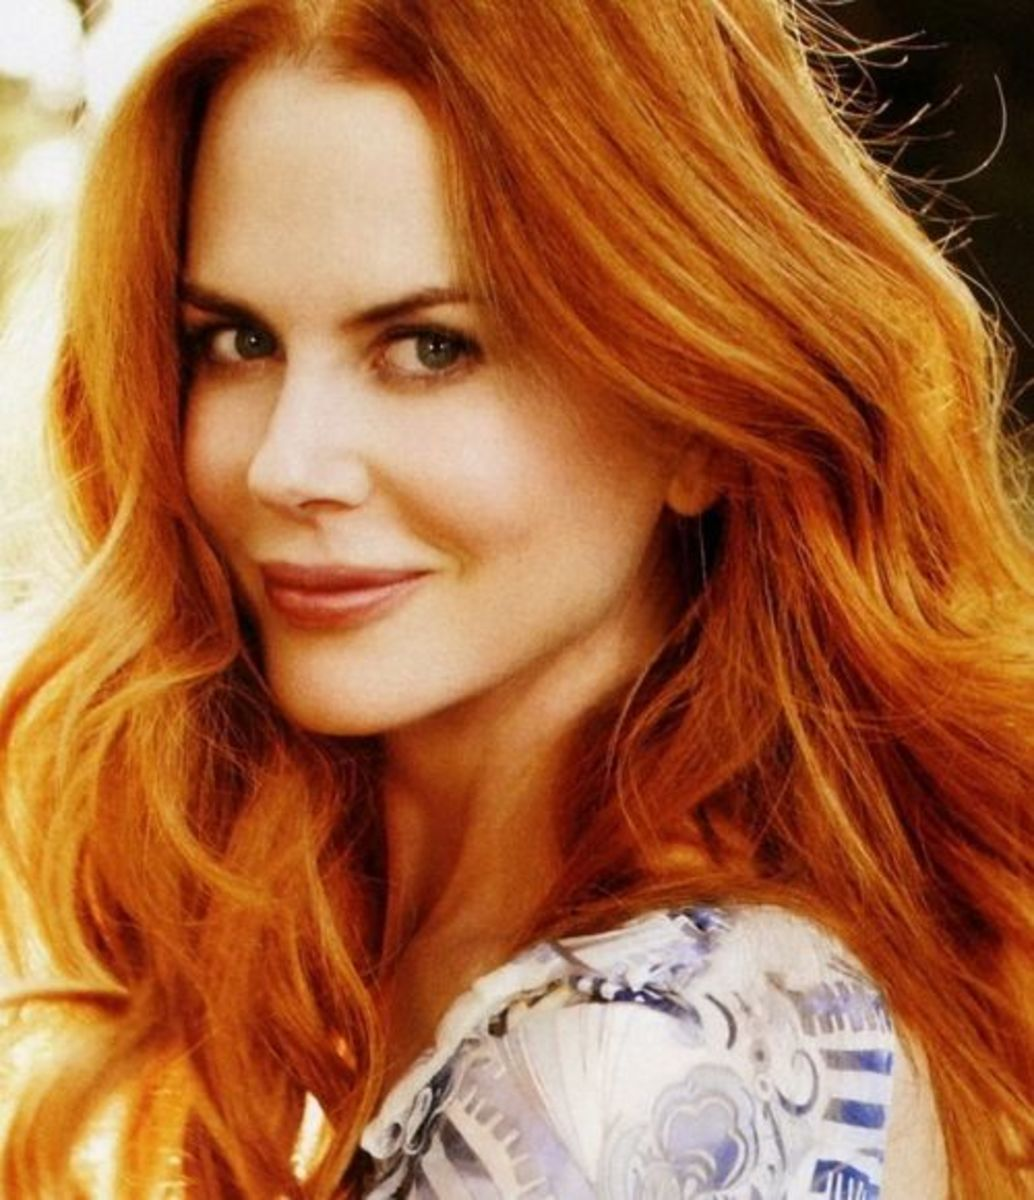 Nicole Kidman, award winning actress